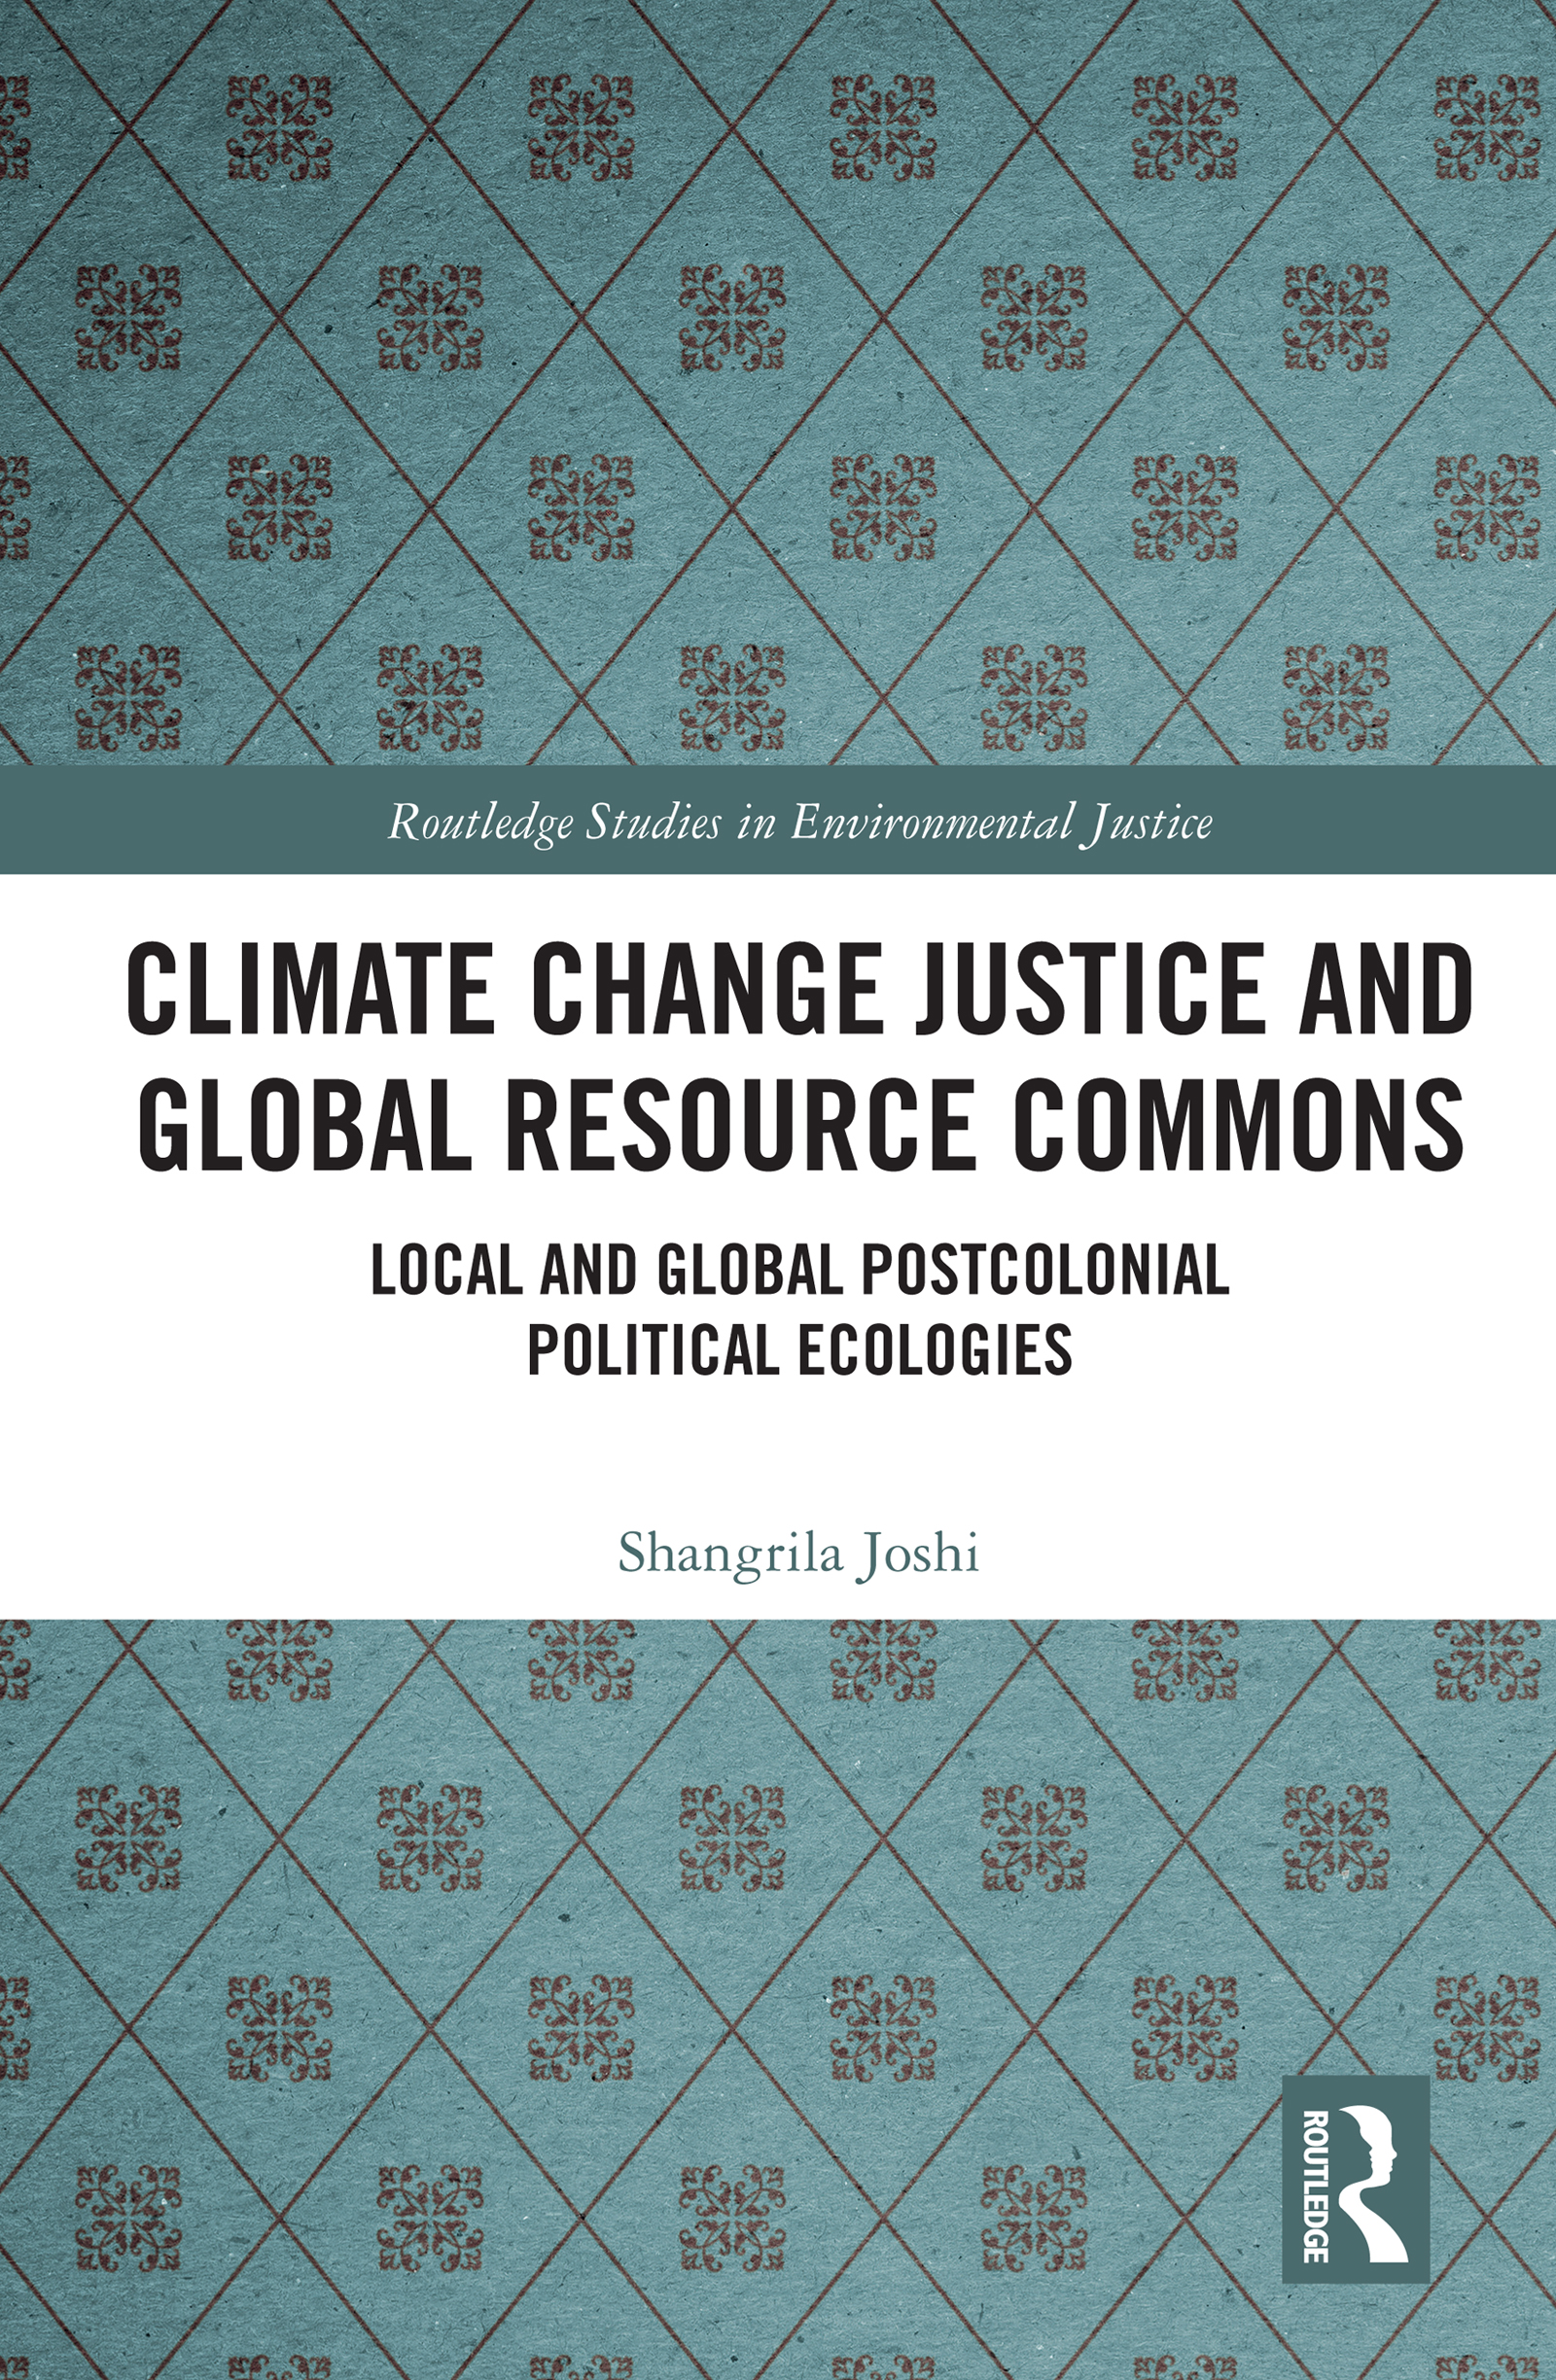 A multi-scalar postcolonial political ecology of the commons in an era of climate crisis